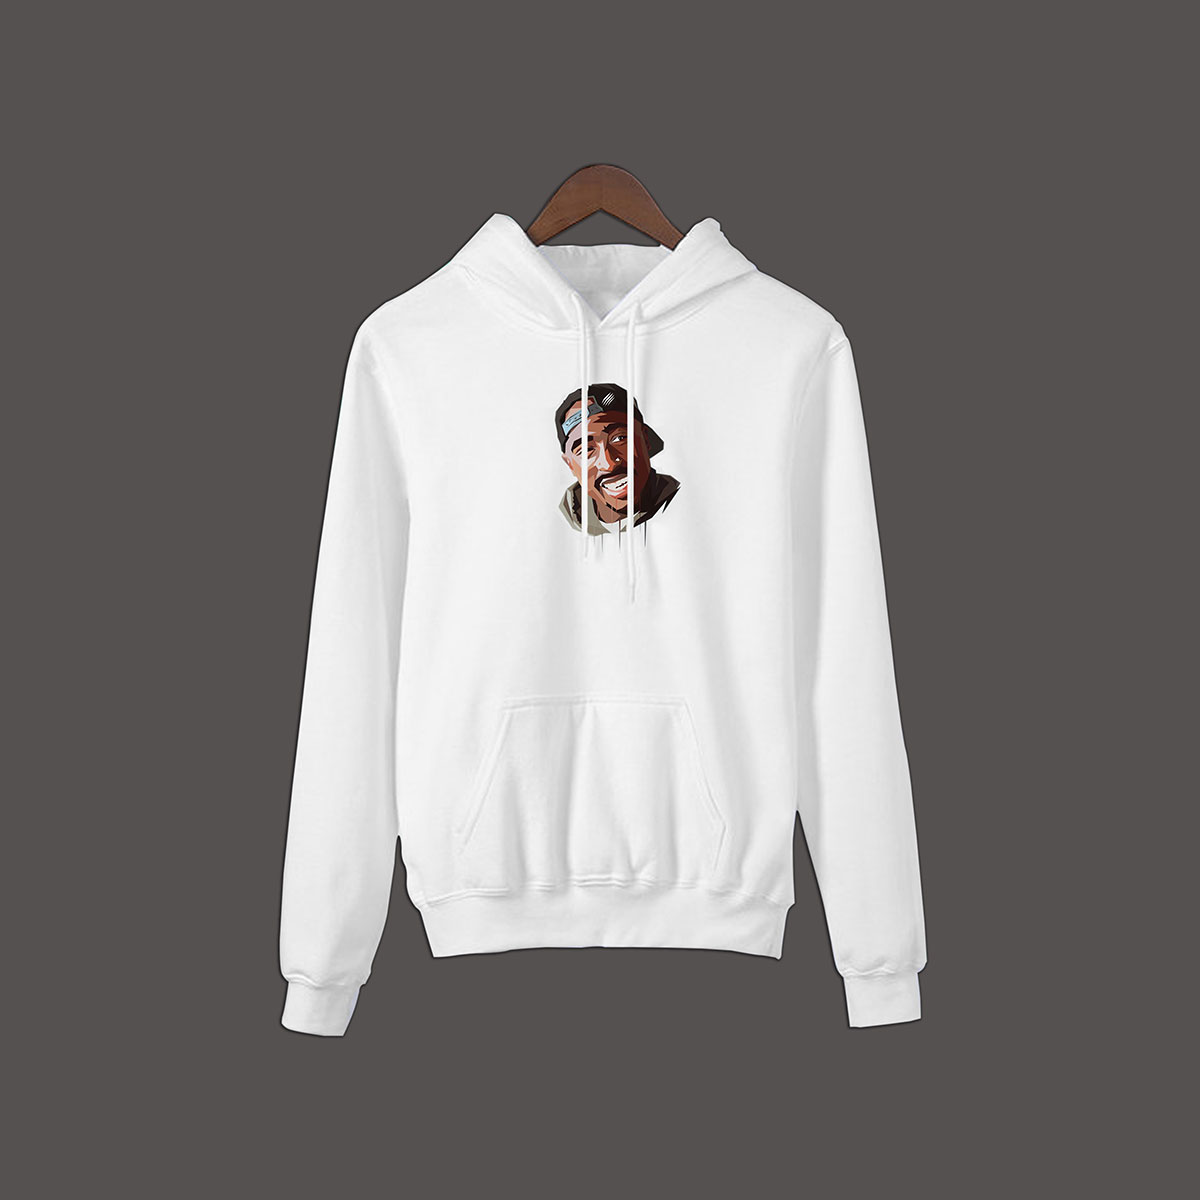 2Pac Pullover Hoodie - White